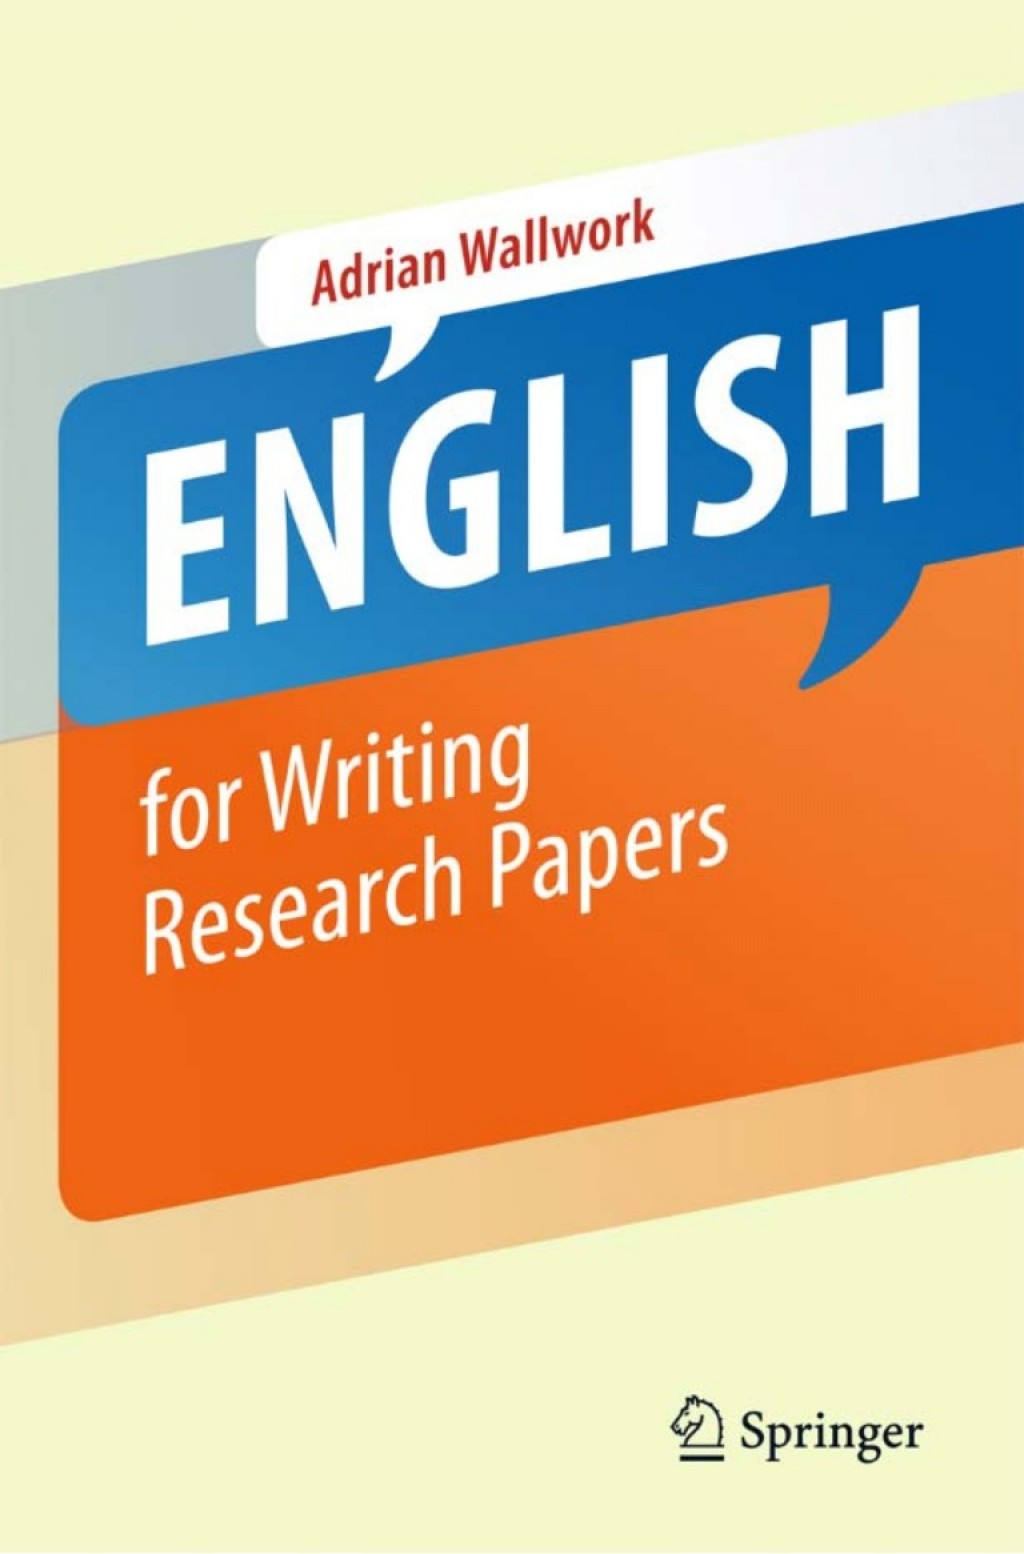 016 Research Paper Writing Papers Englishforwritingresearchpapers Conversion Gate01 Thumbnail Unique A Complete Guide 15th Edition Ebook 16th Pdf Free Large